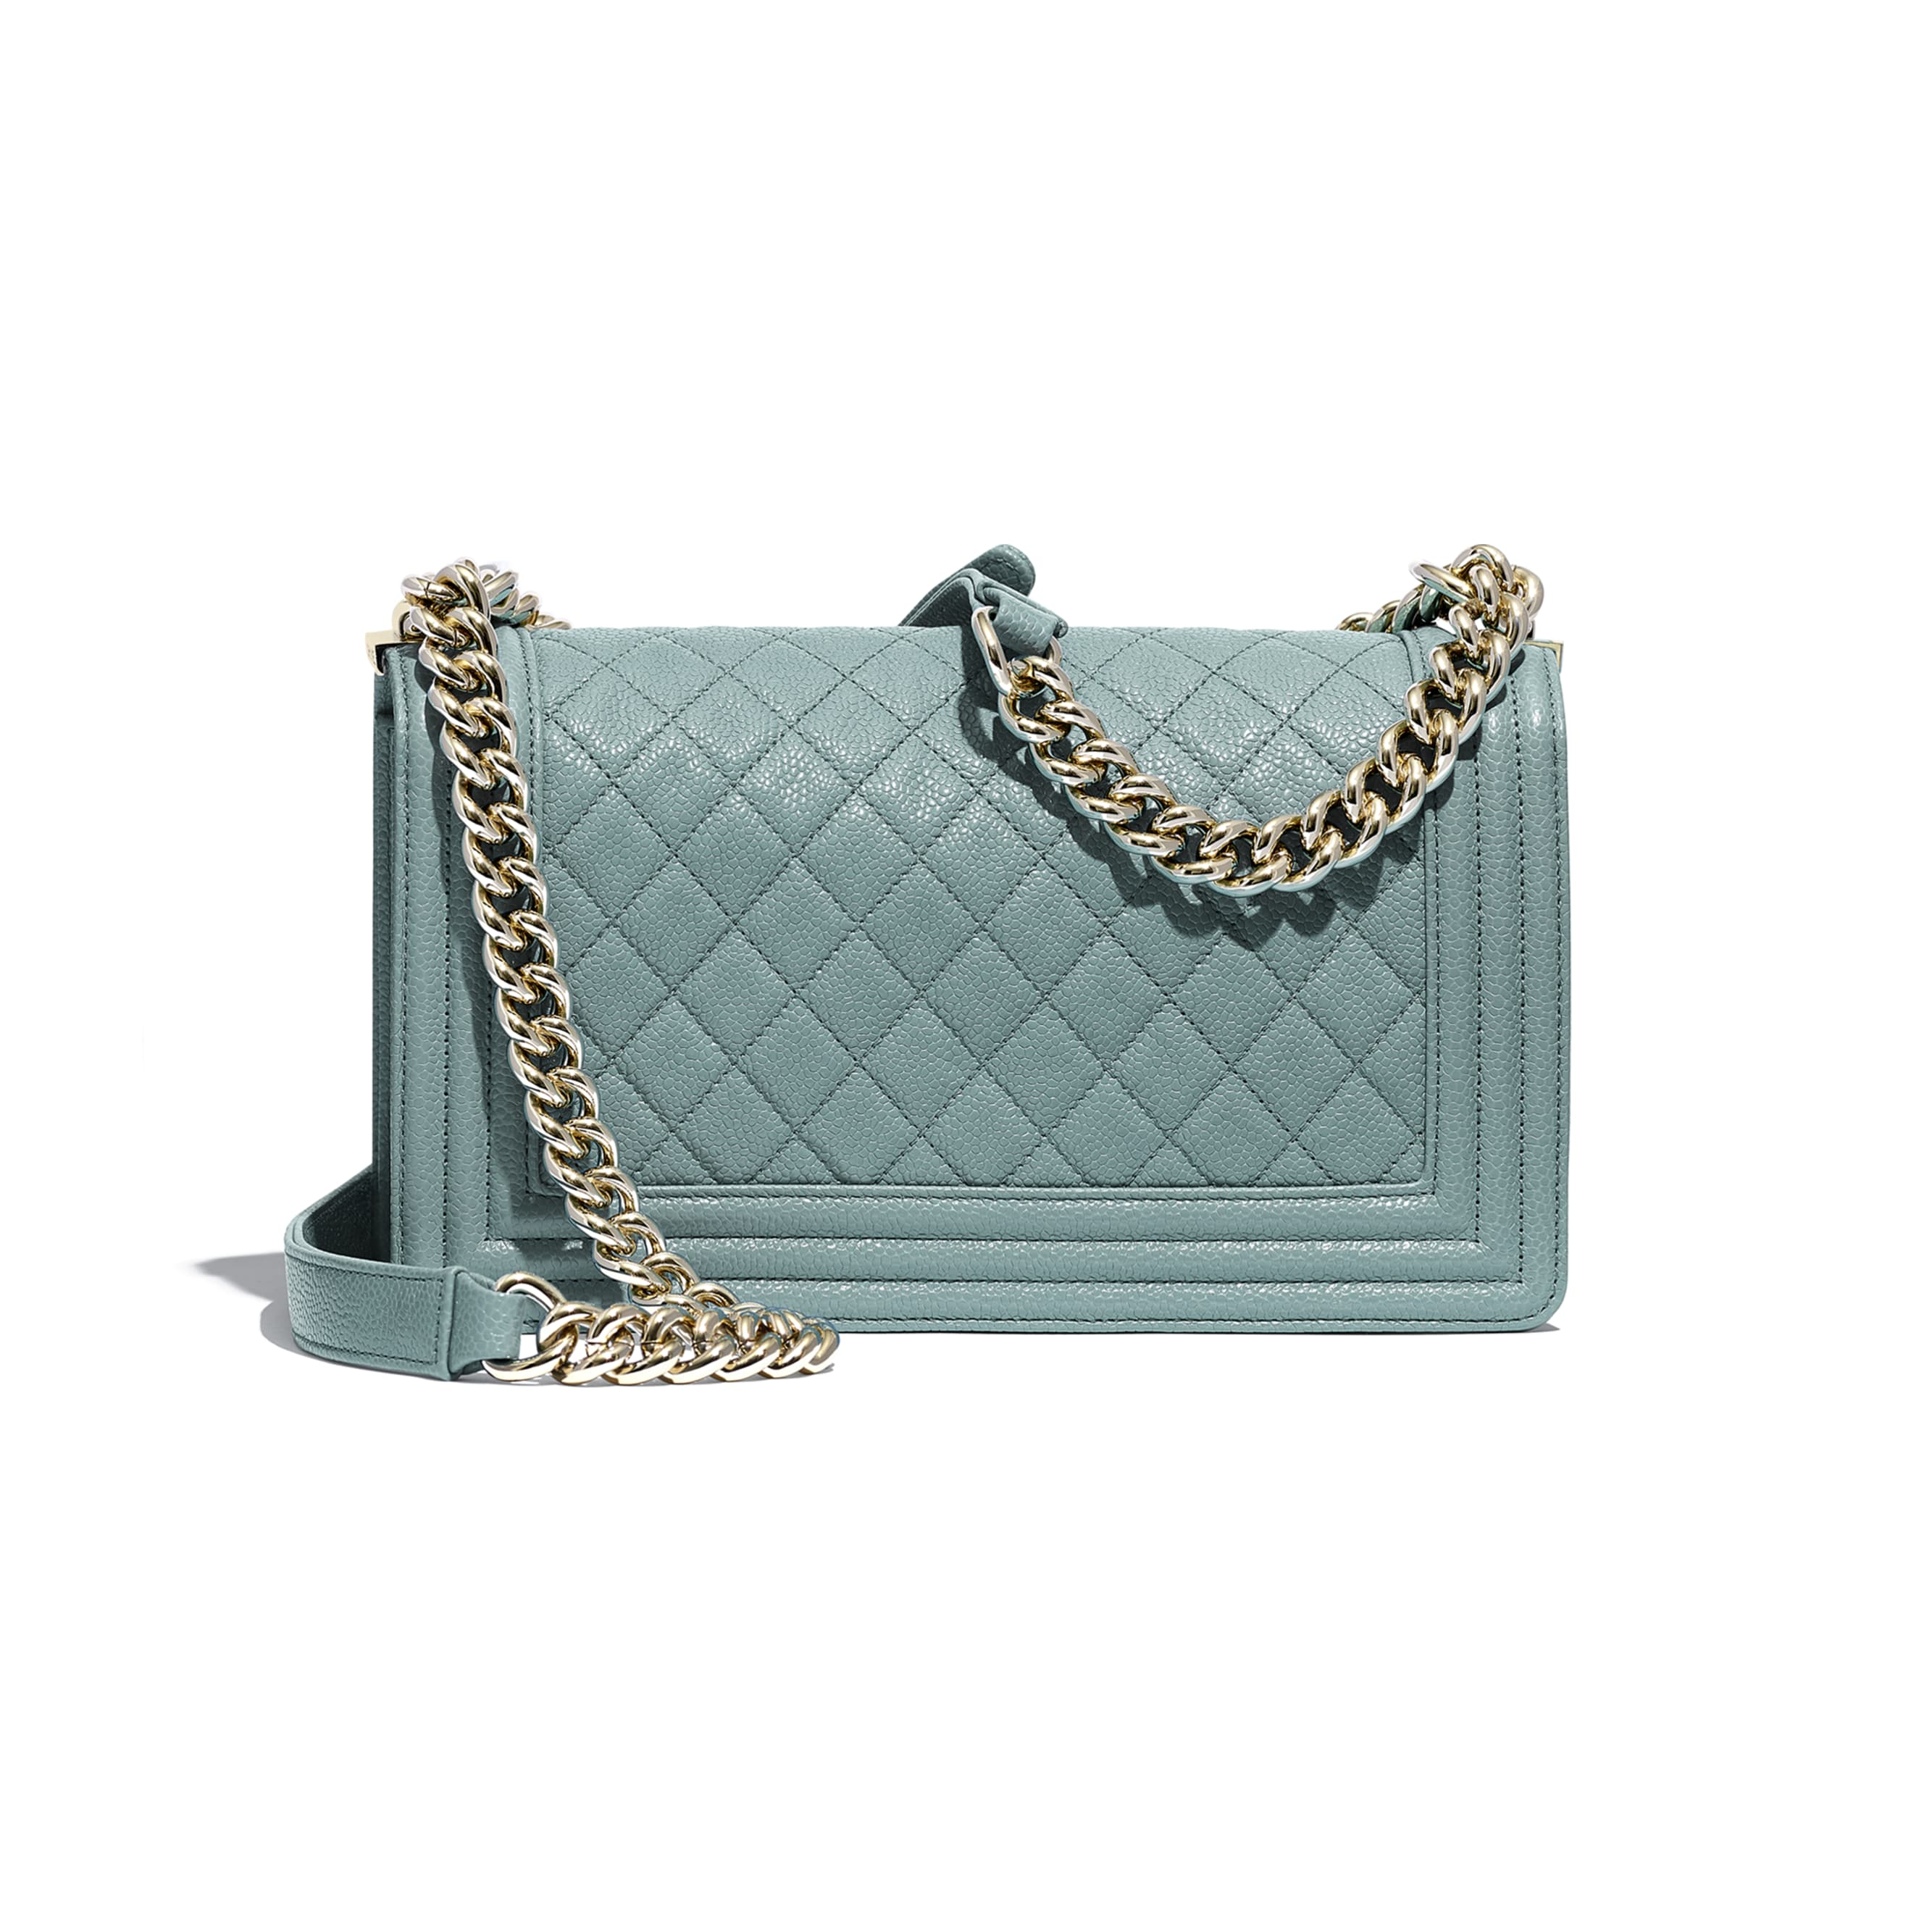 BOY CHANEL Handbag - Blue - Grained Calfskin & Gold-Tone Metal - CHANEL - Alternative view - see standard sized version